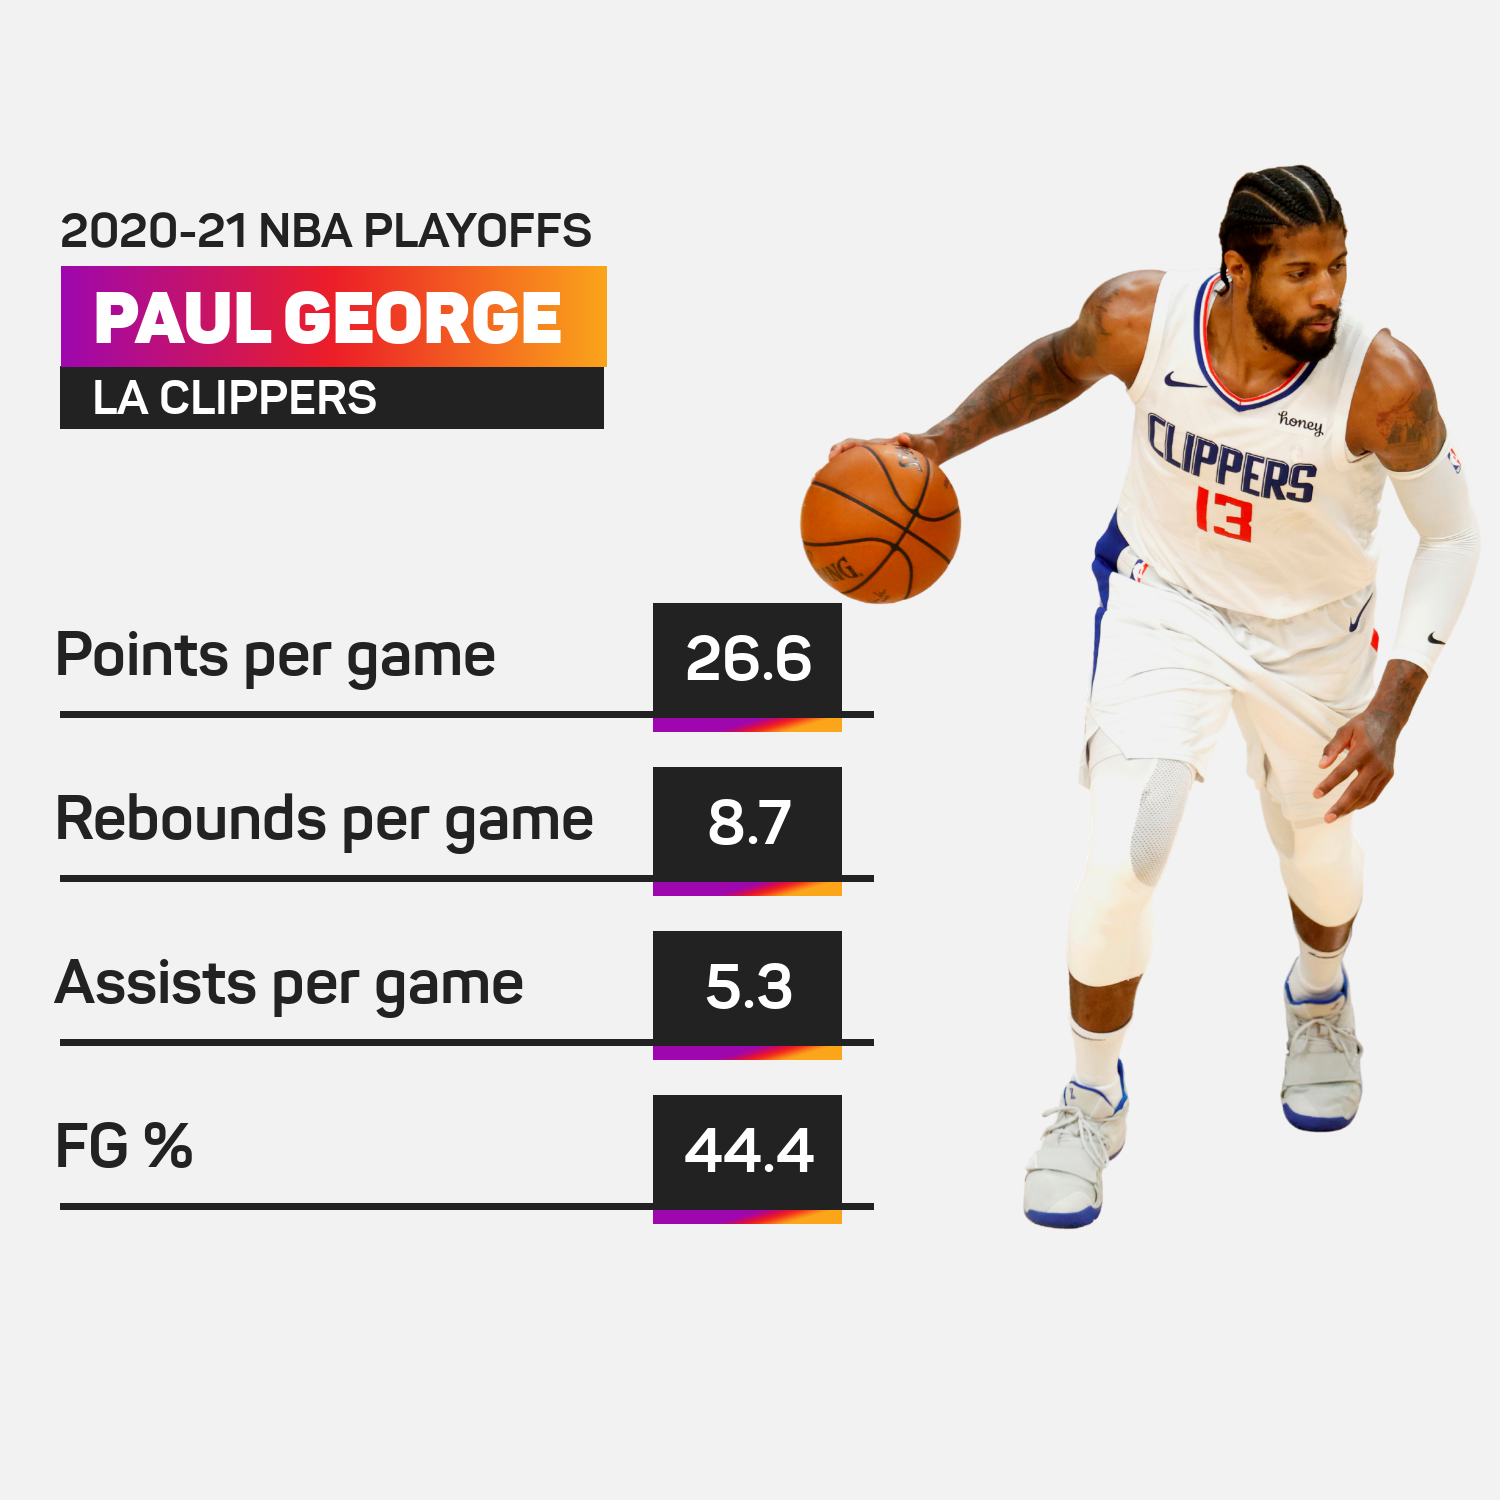 Paul George in the 2020-21 NBA Playoffs